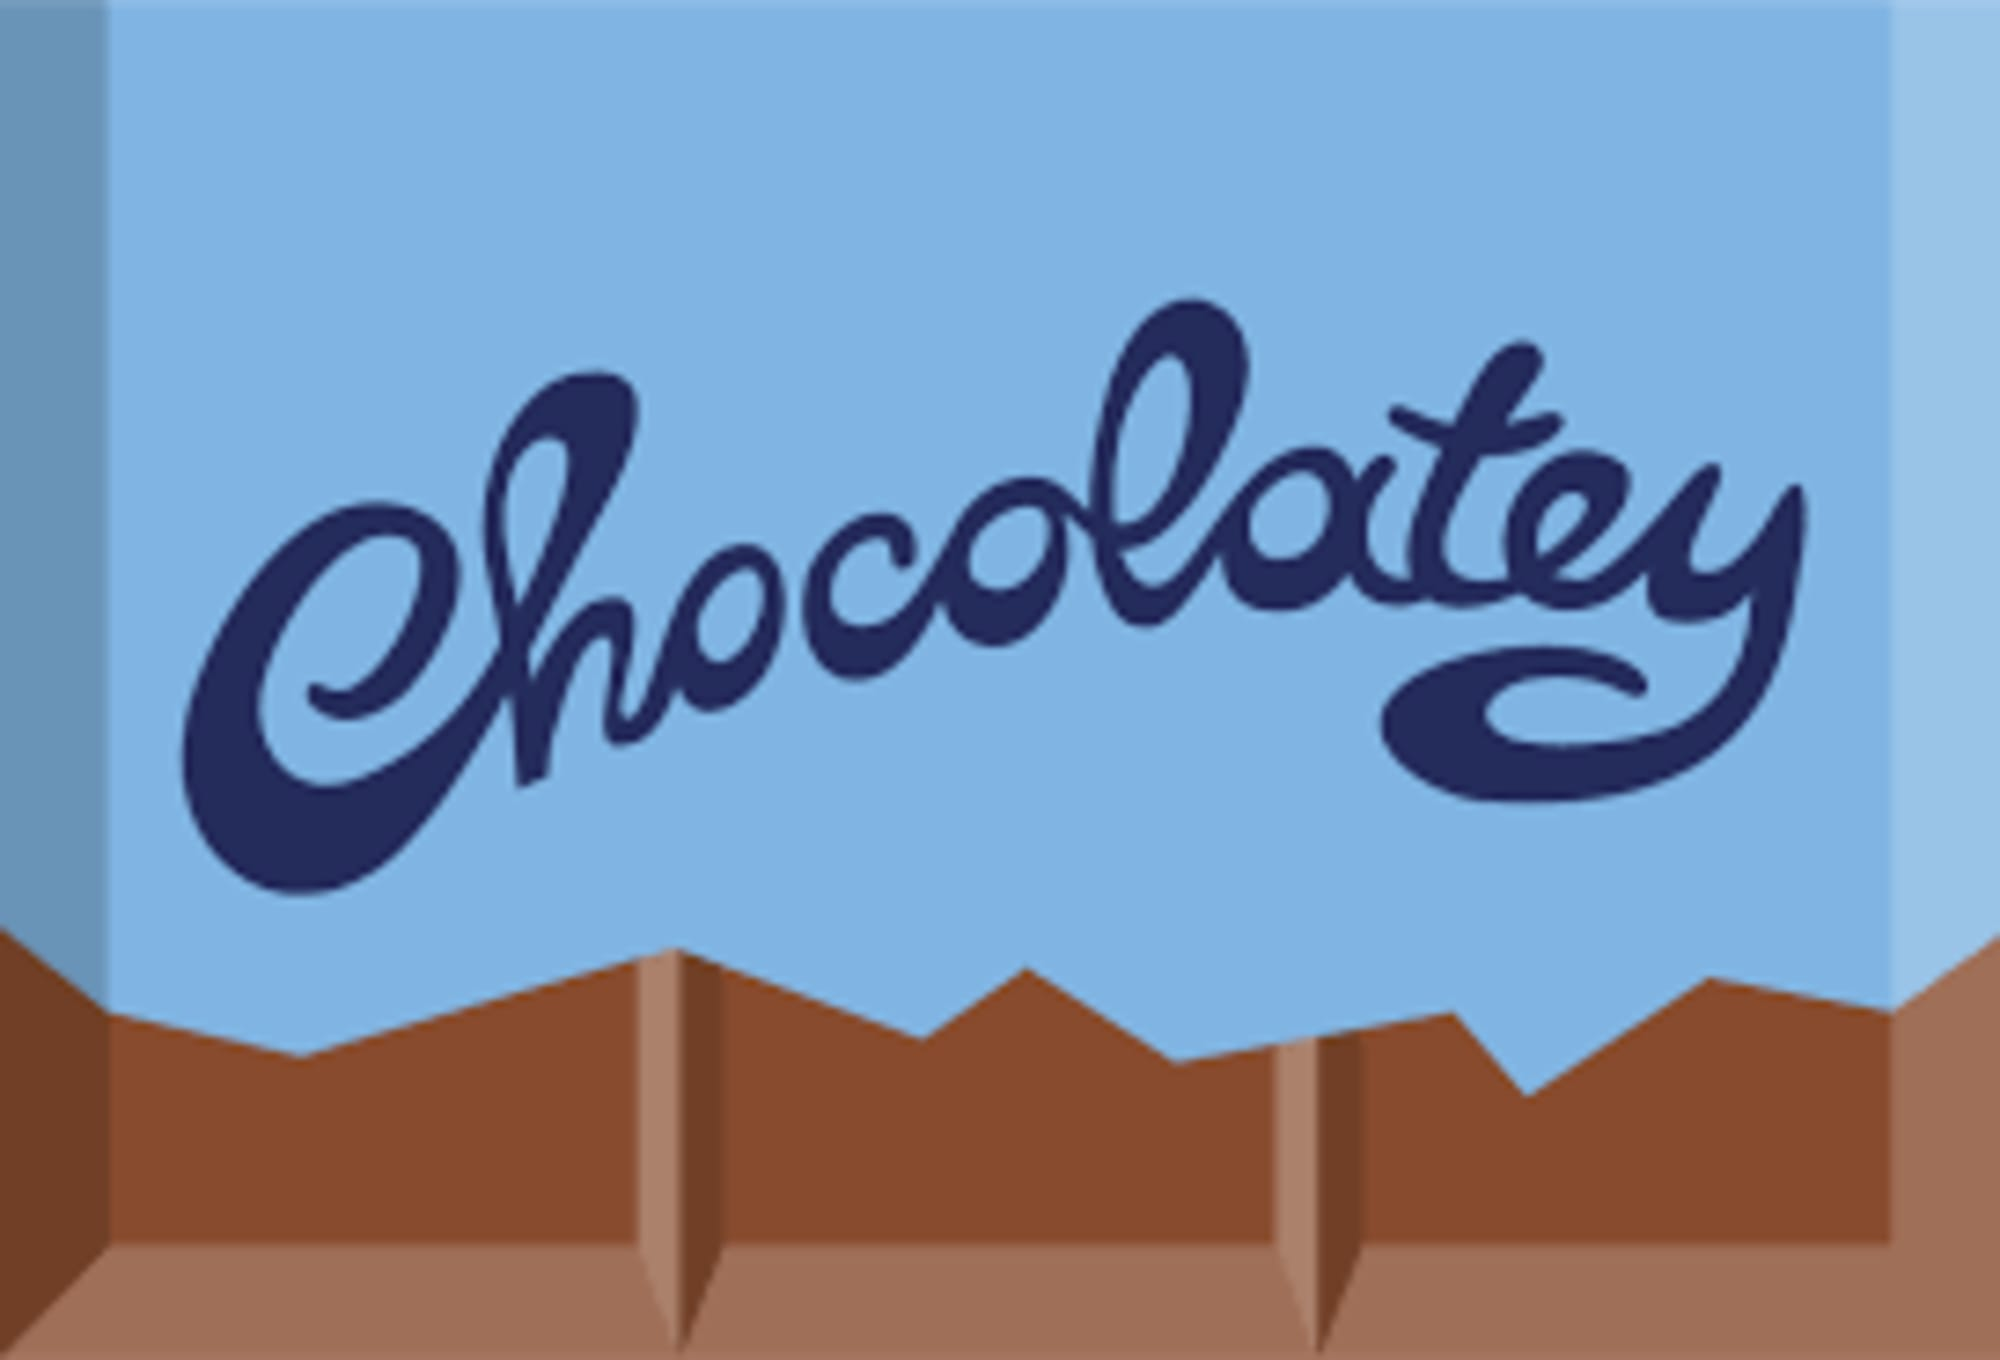 Getting Started with the Chocolatey Package Manager